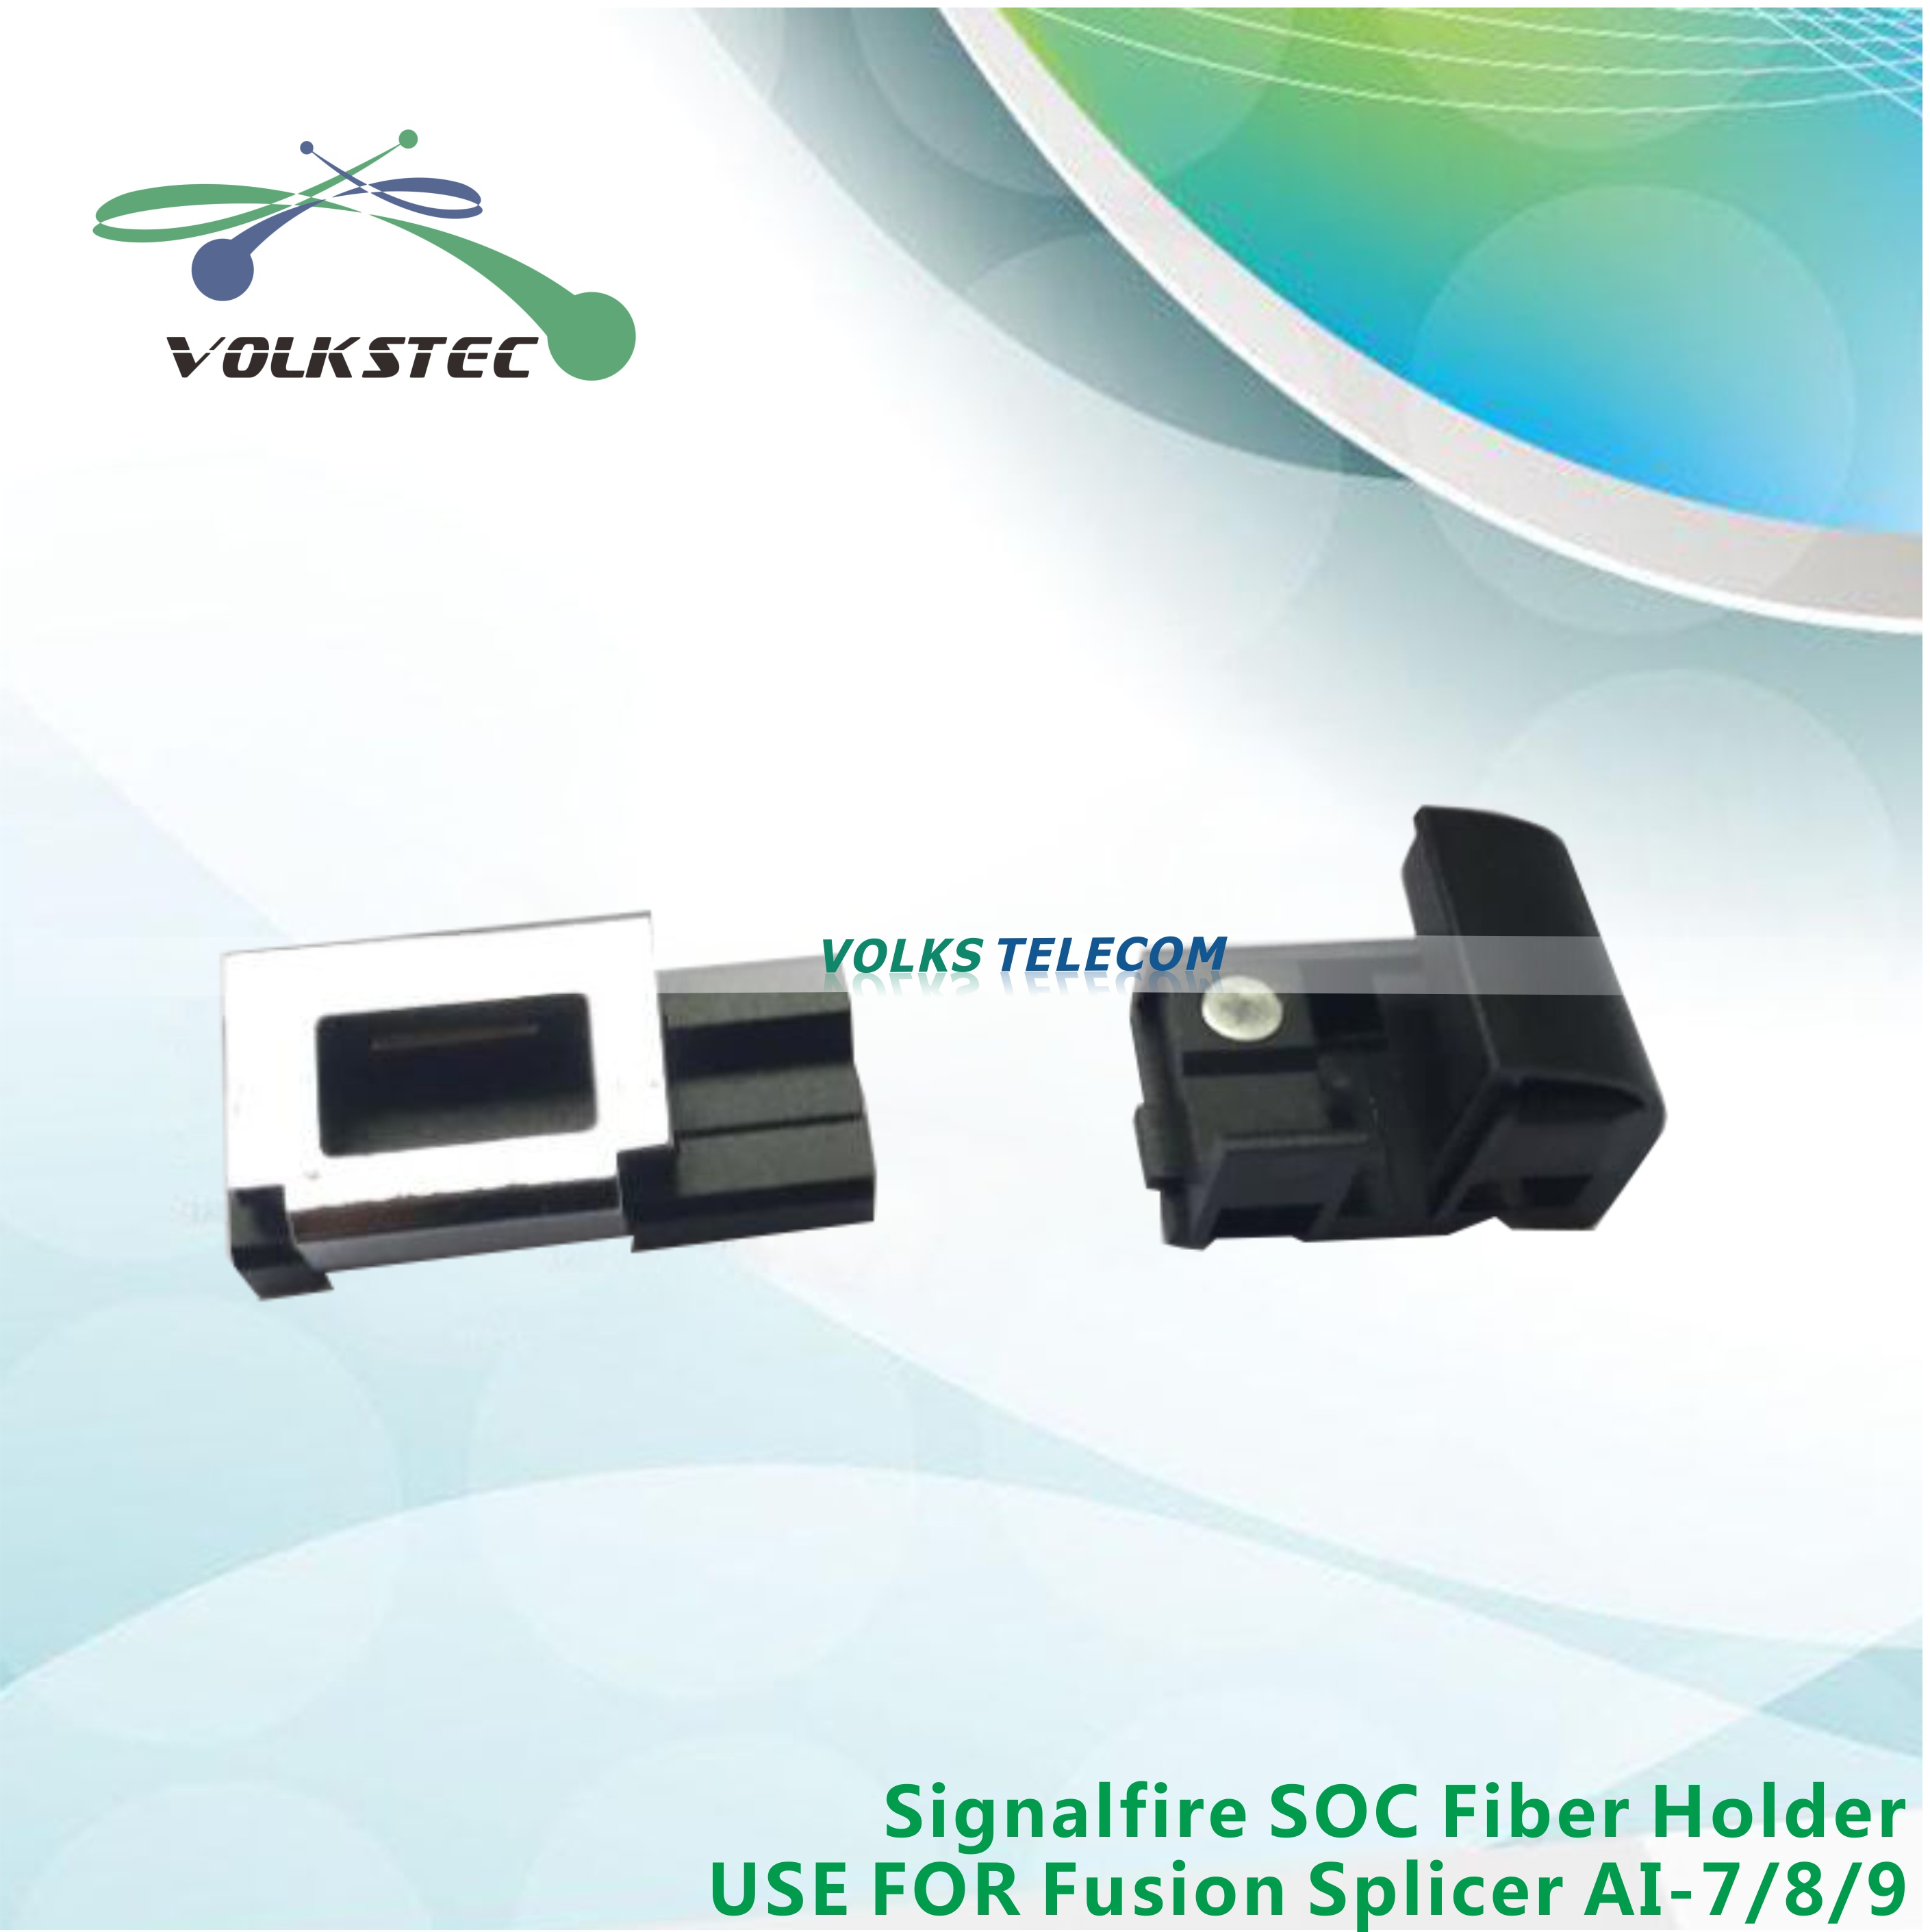 Signalfire AI-7/8/9 Fusion Splicer Machine SOC Fiber Holder